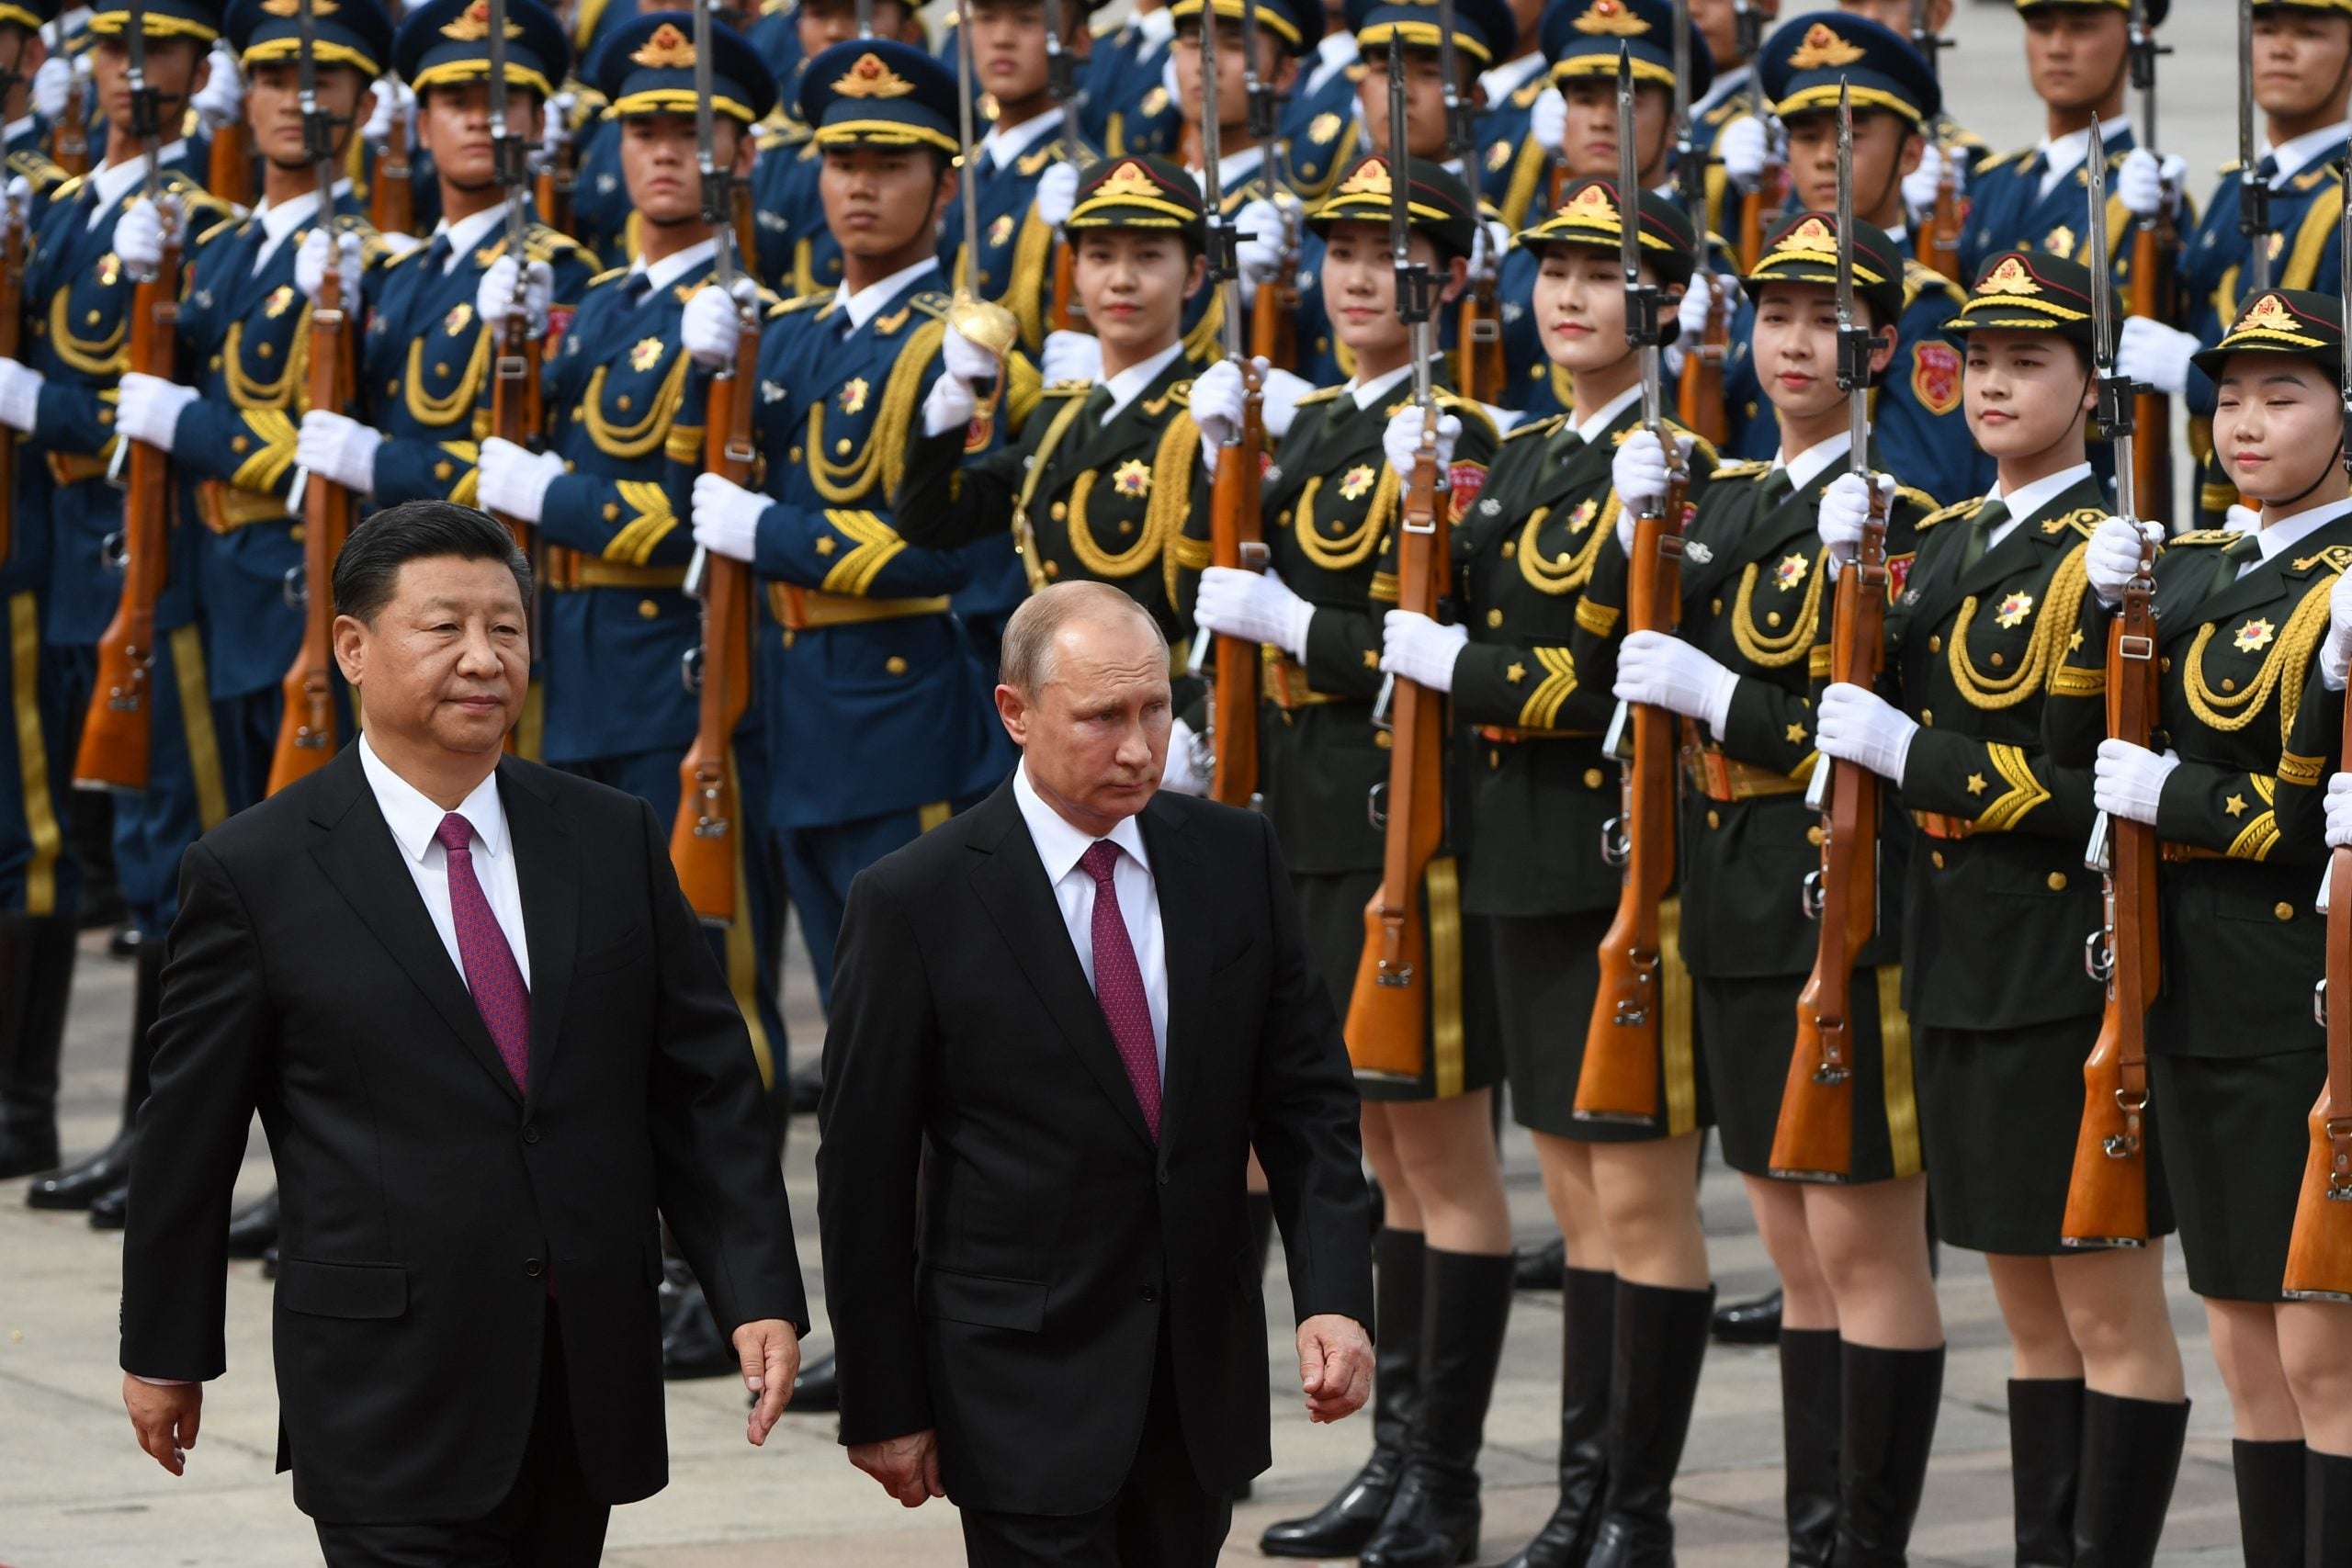 As the western alliance crumbles, Russia and China are moving closer together